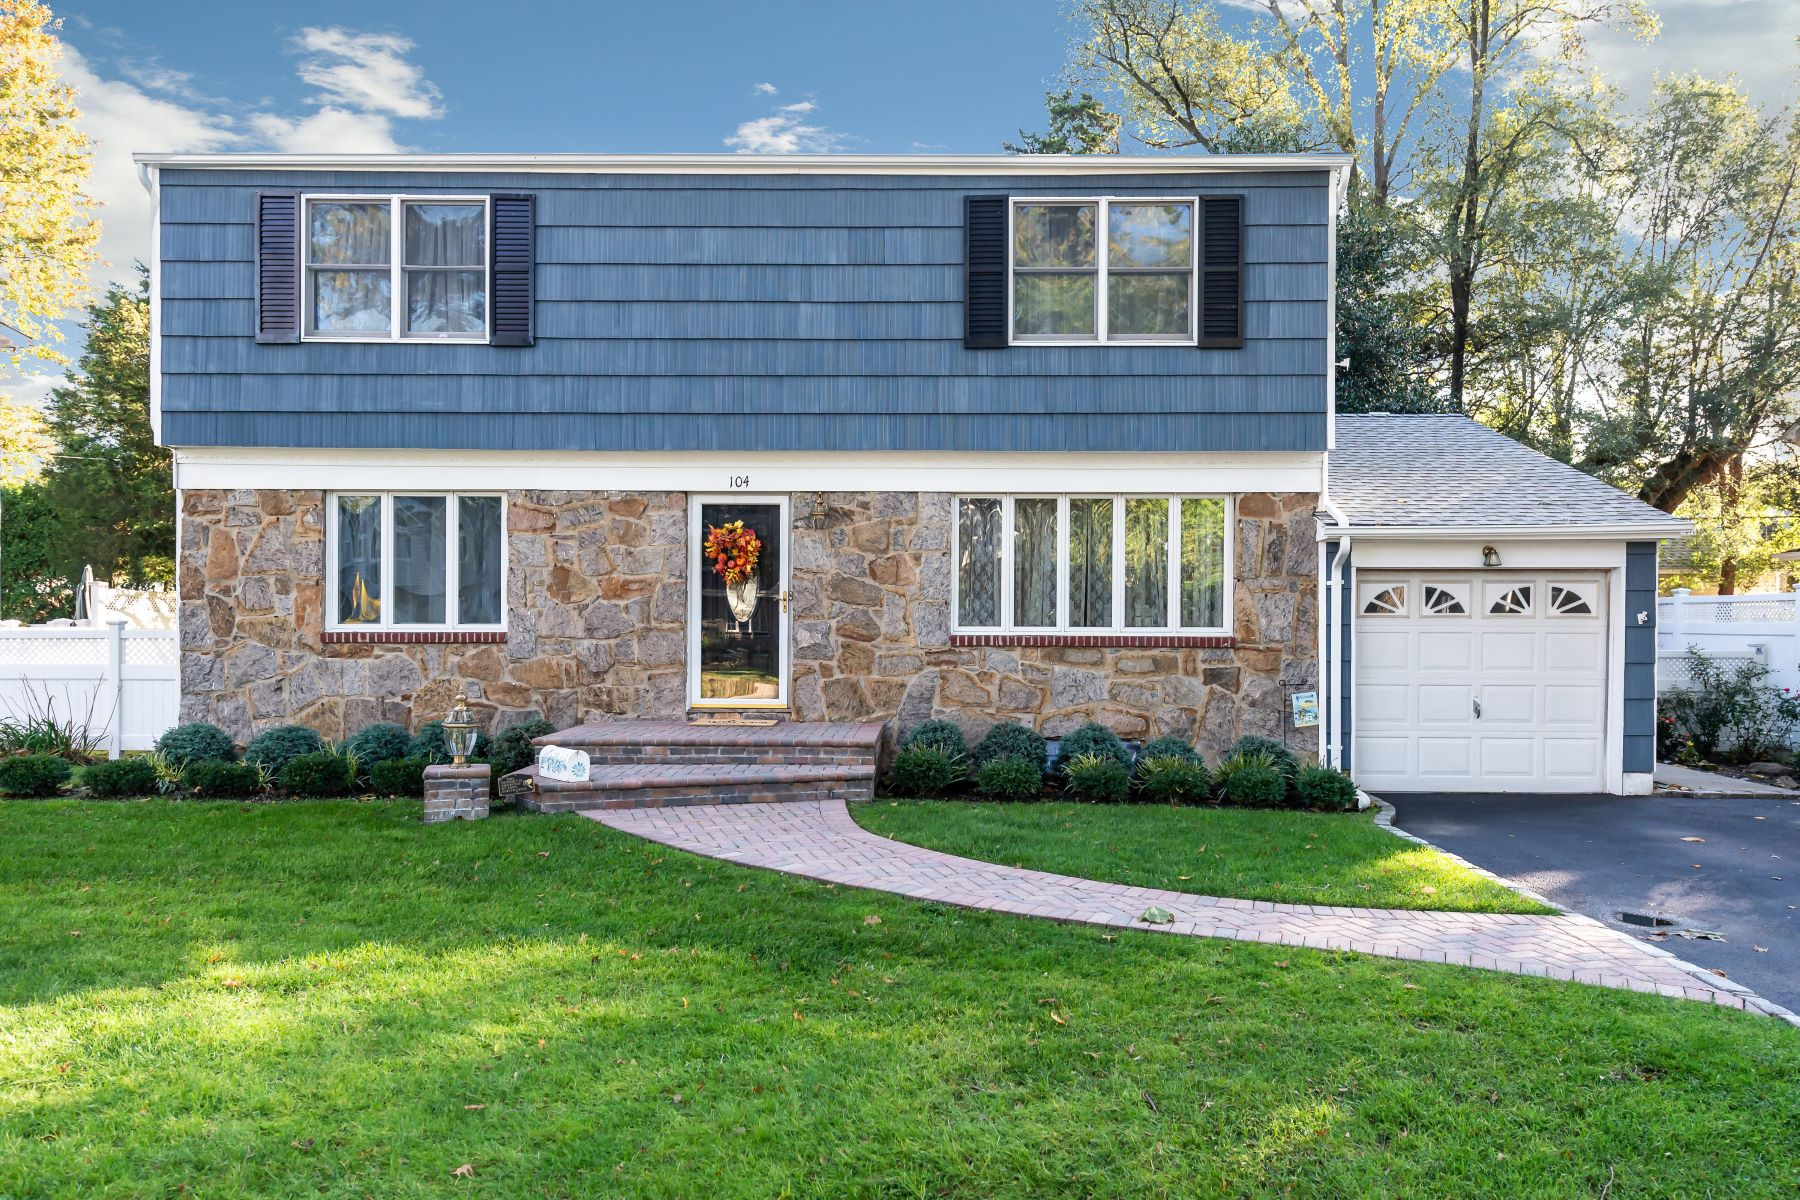 Single Family Homes for Sale at Westbury 104 Walsh Ln Westbury, New York 11590 United States